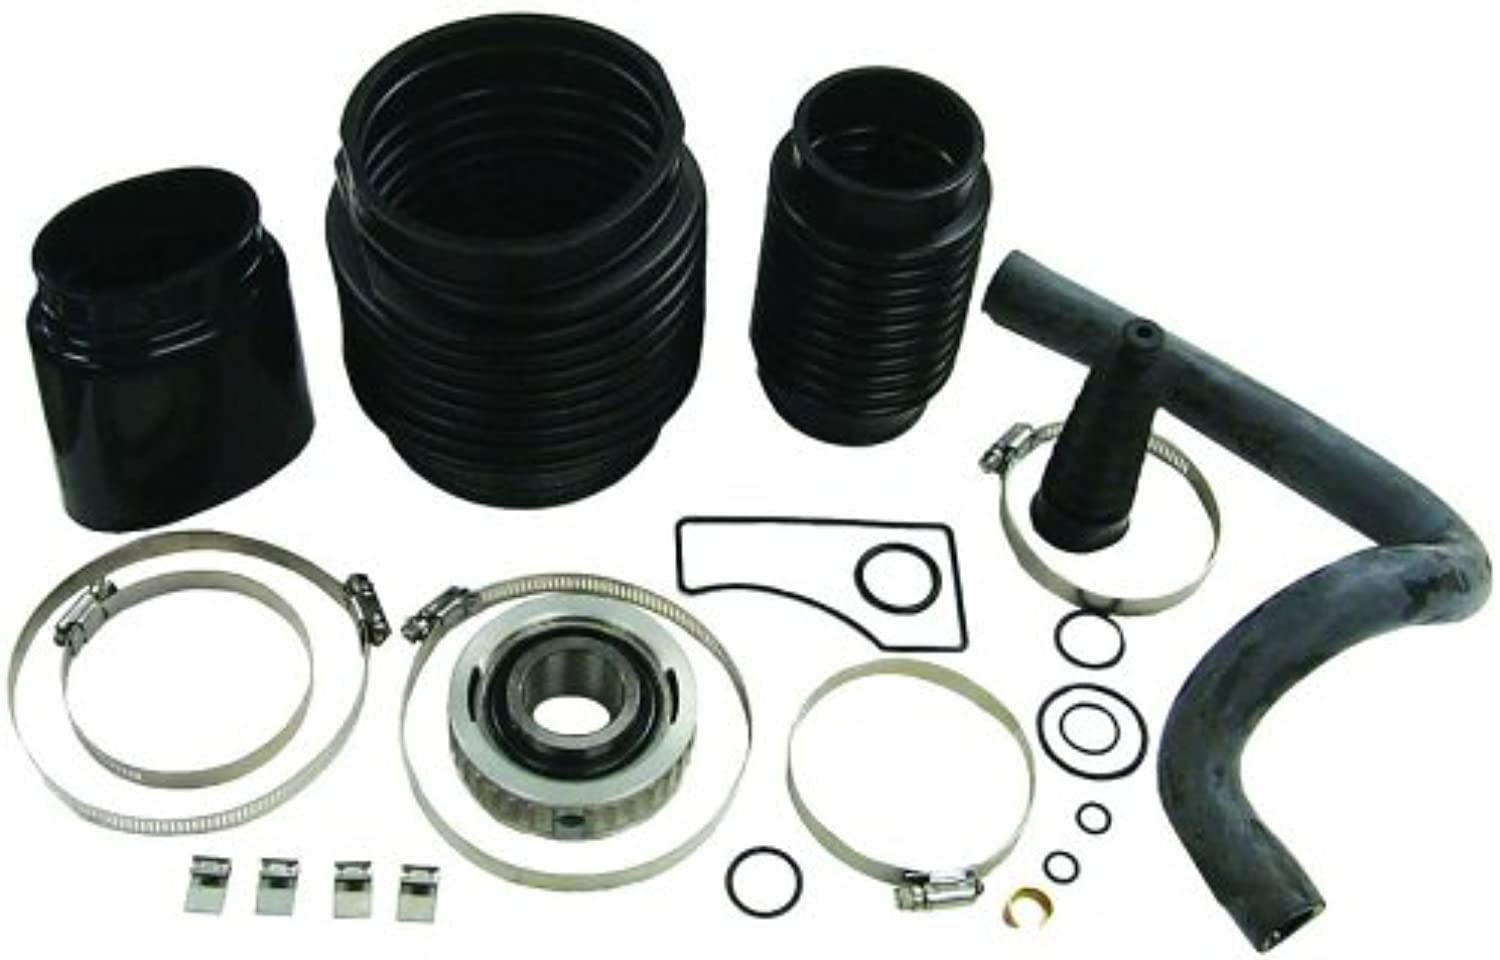 Sierra International 18-8212 Marine Transom Seal Kit for Mercruiser Stern Drive